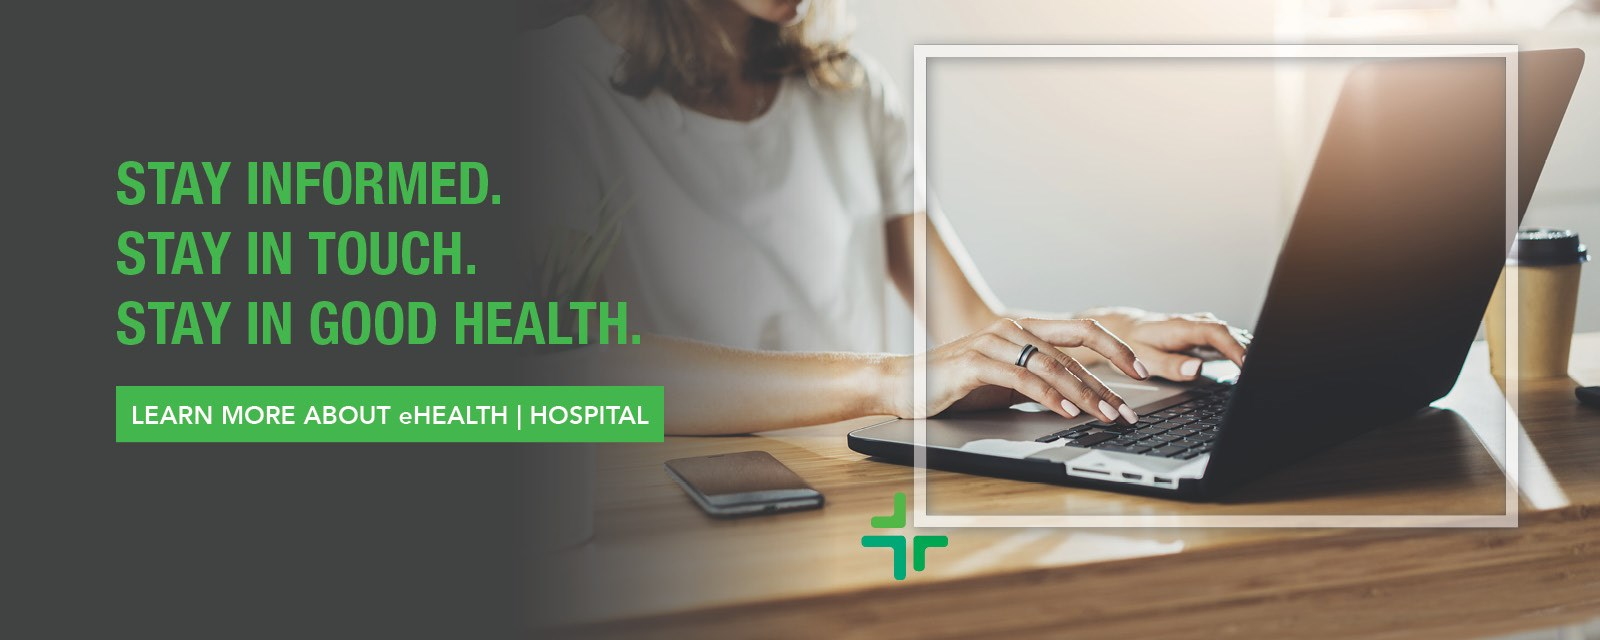 To learn more about Lima Memorial eHealth Hospital, click here.